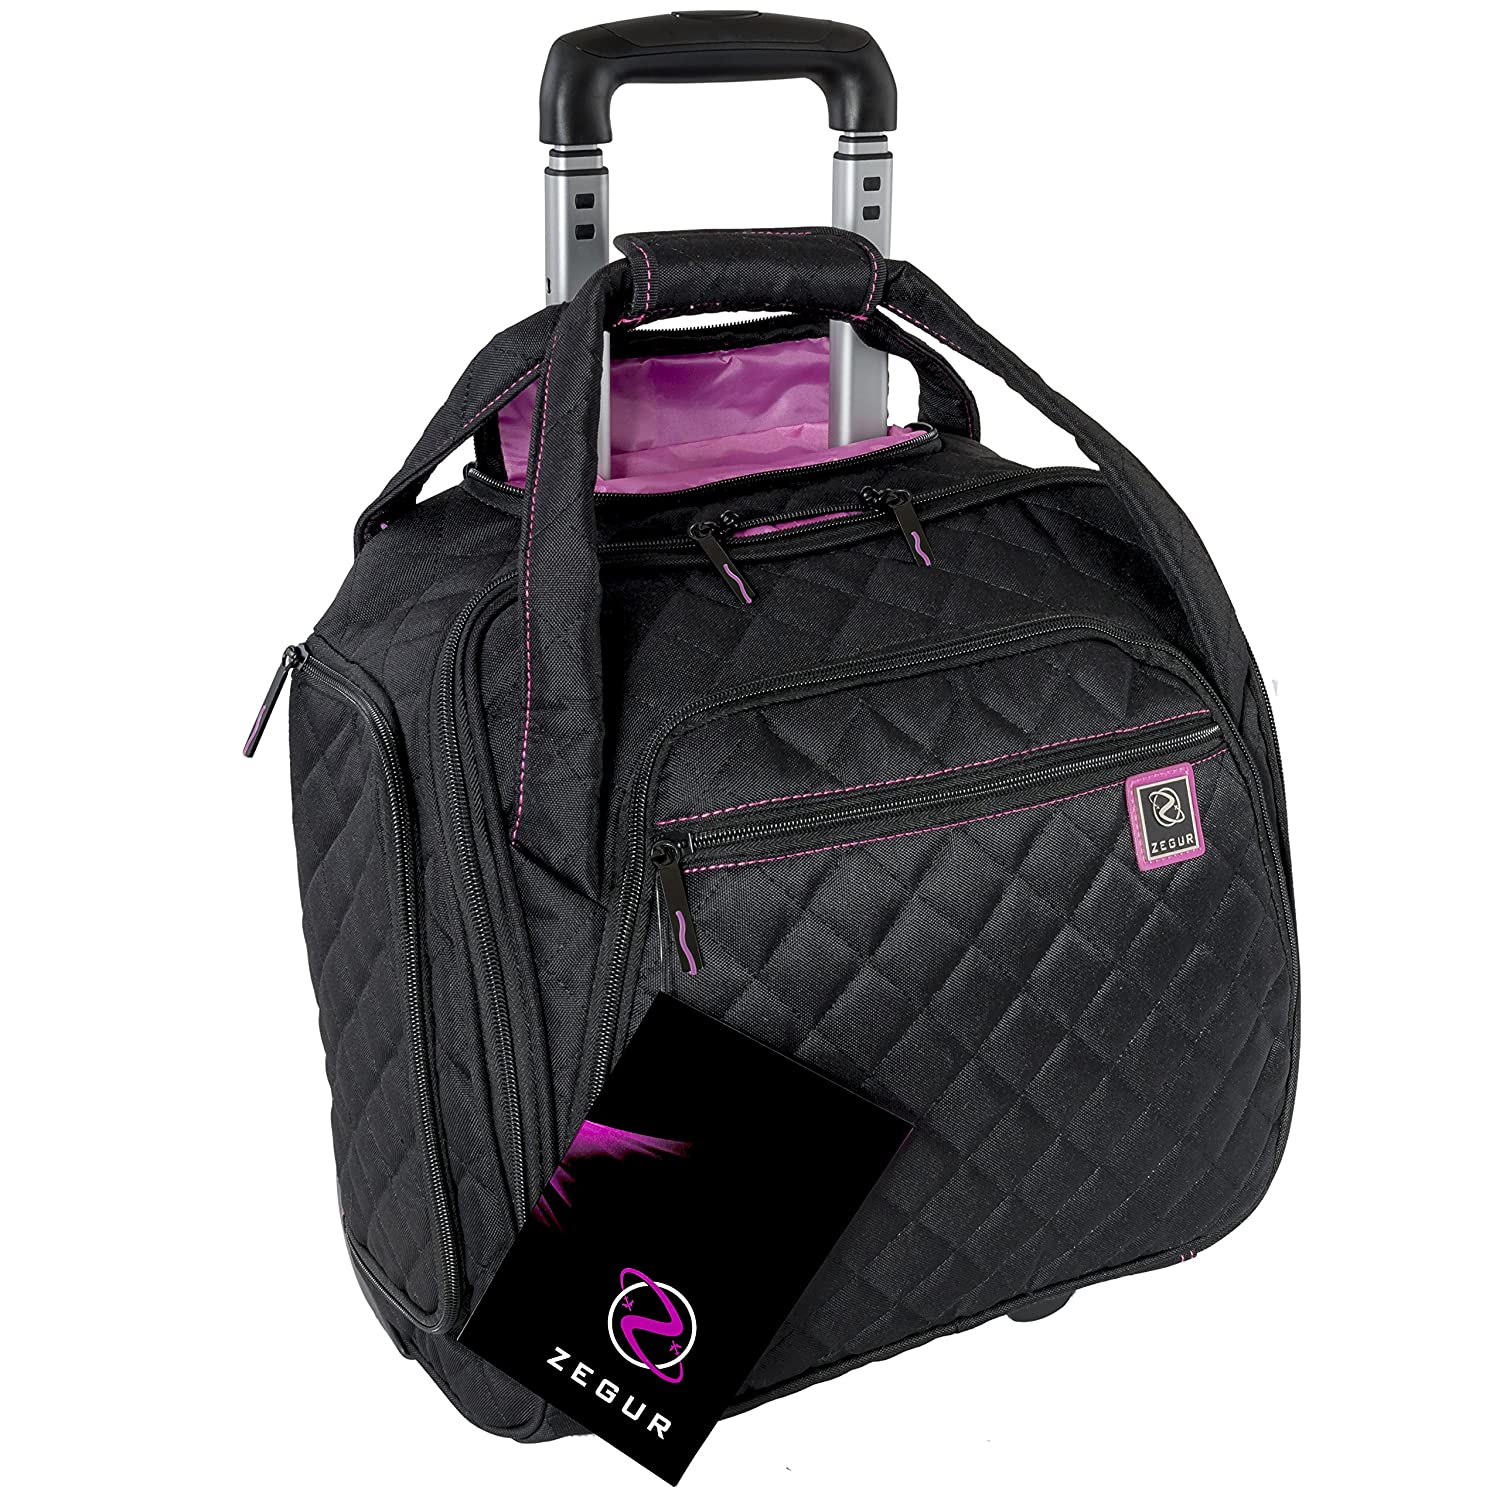 ZEGUR Quilted Rolling Underseat Carry-On Luggage – Wheeled Travel Tote Bag Black